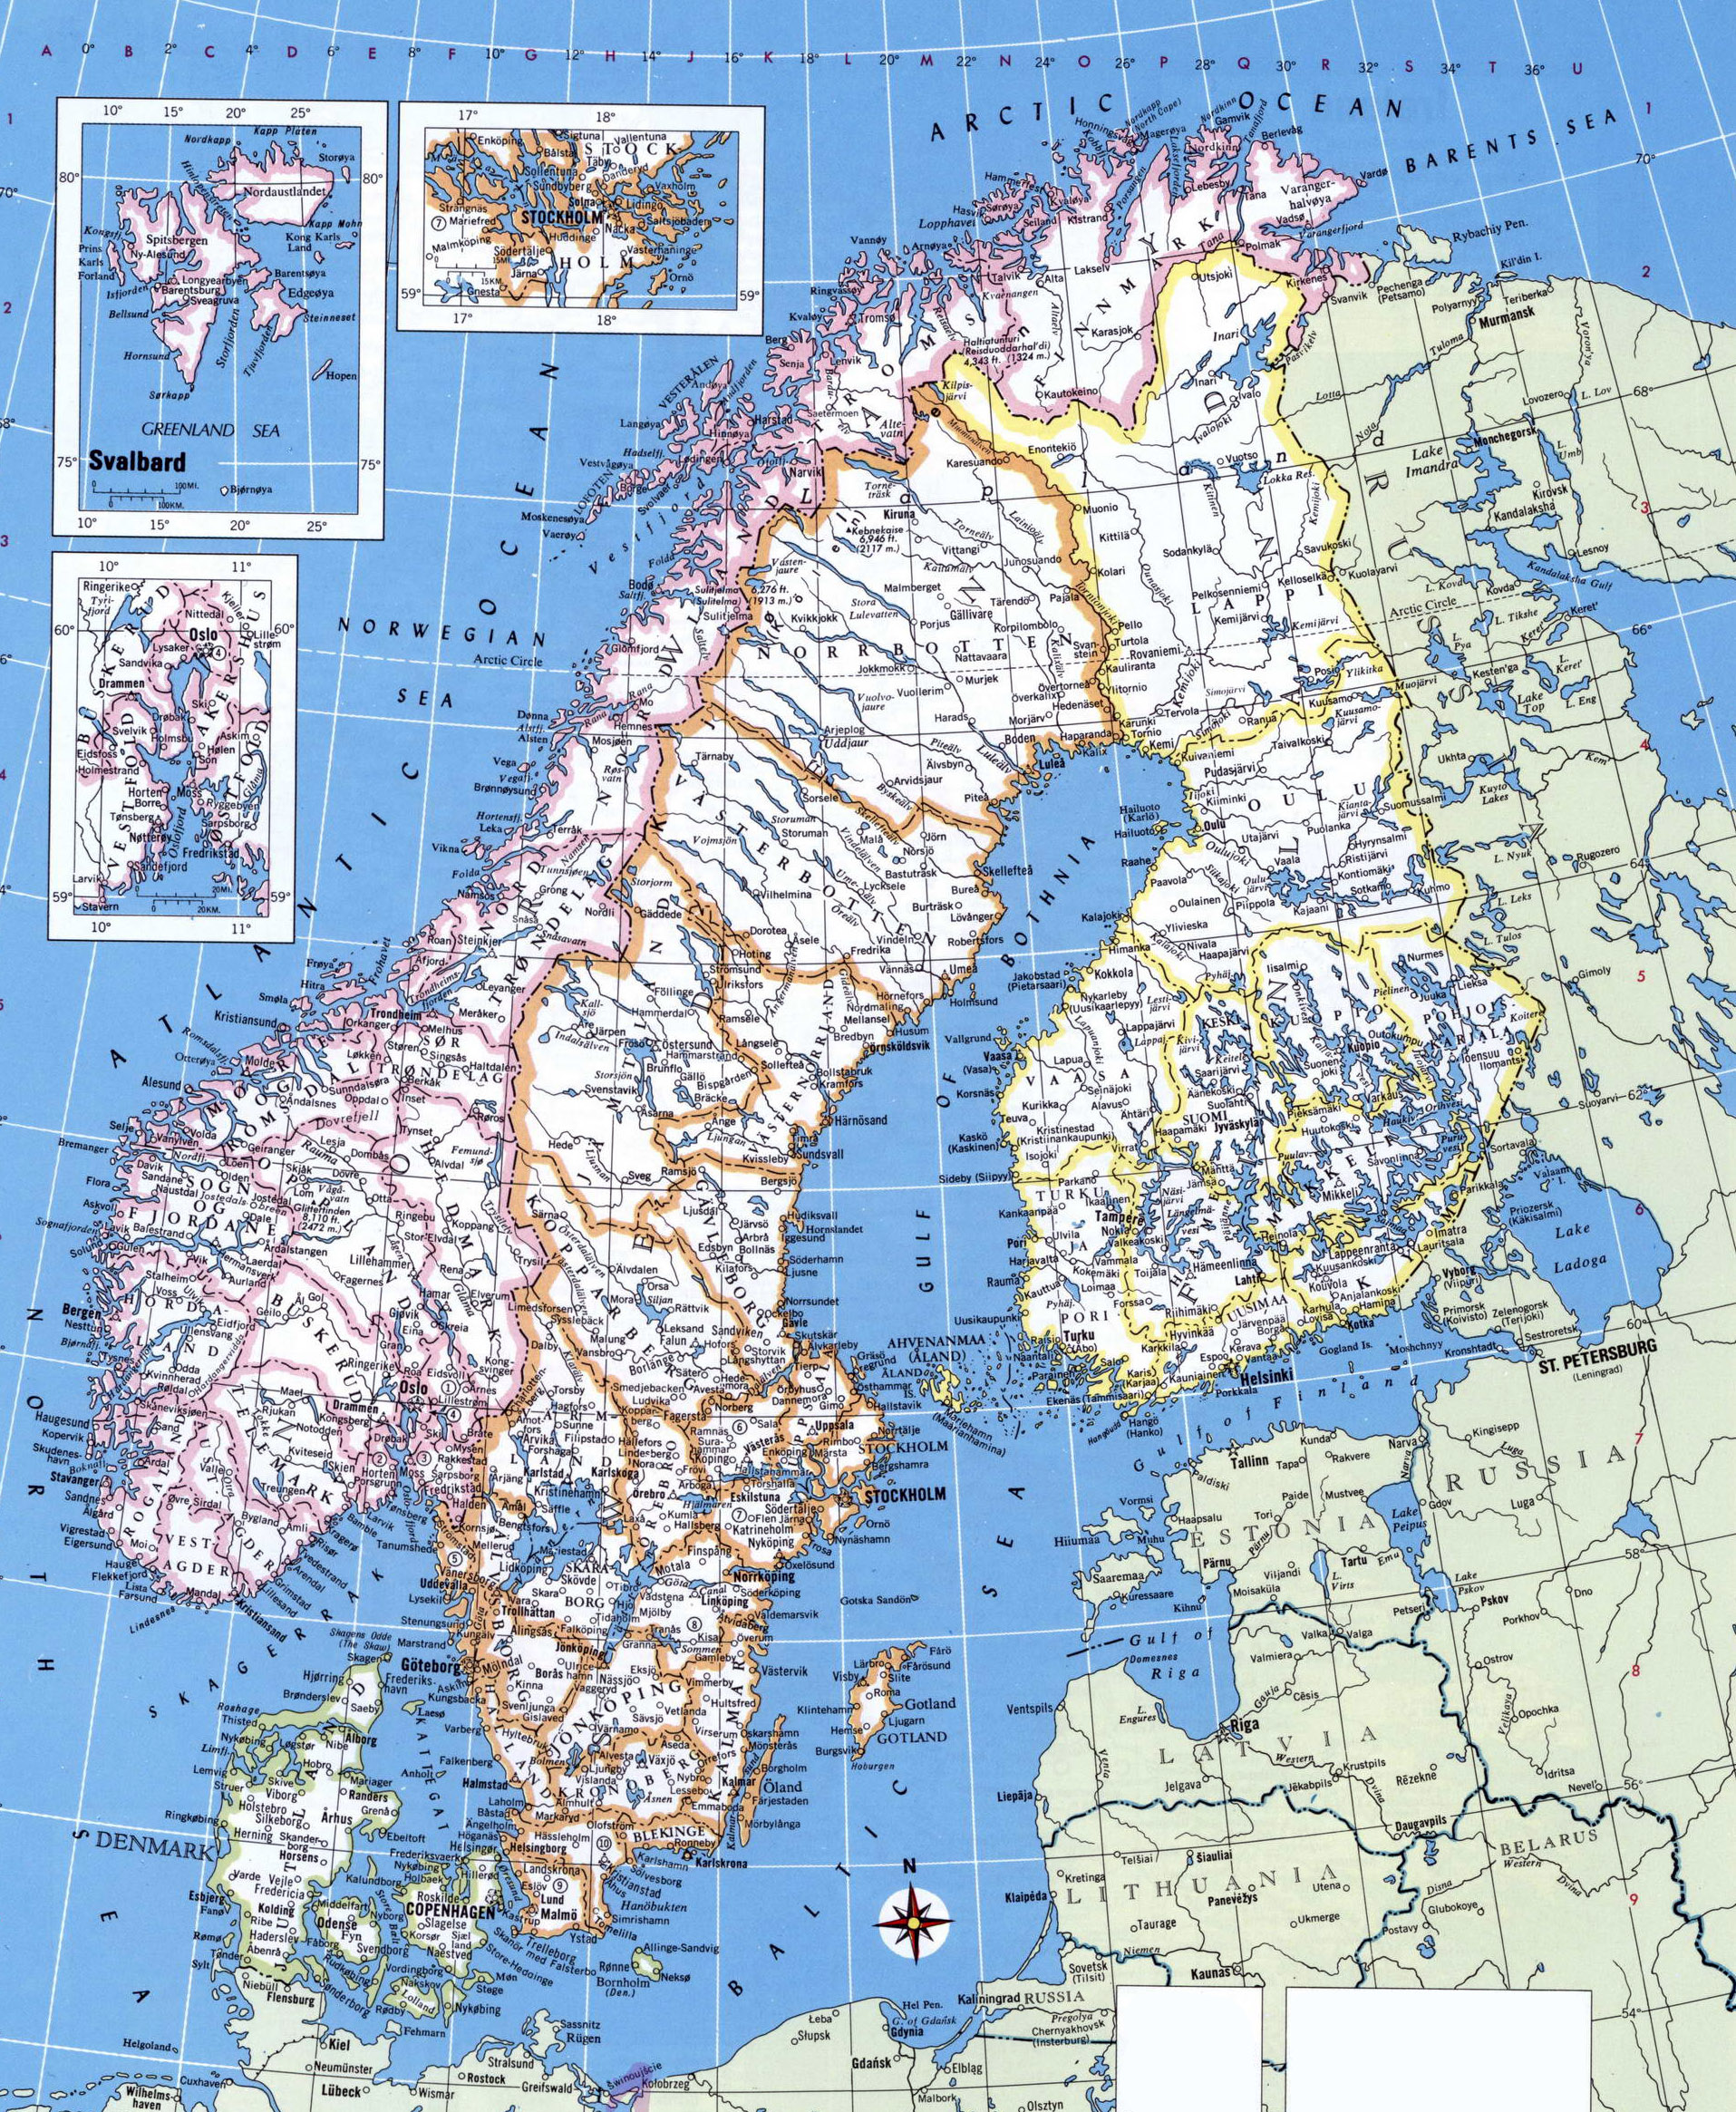 Map Of Norway And Sweden My Blog - Norway highway map